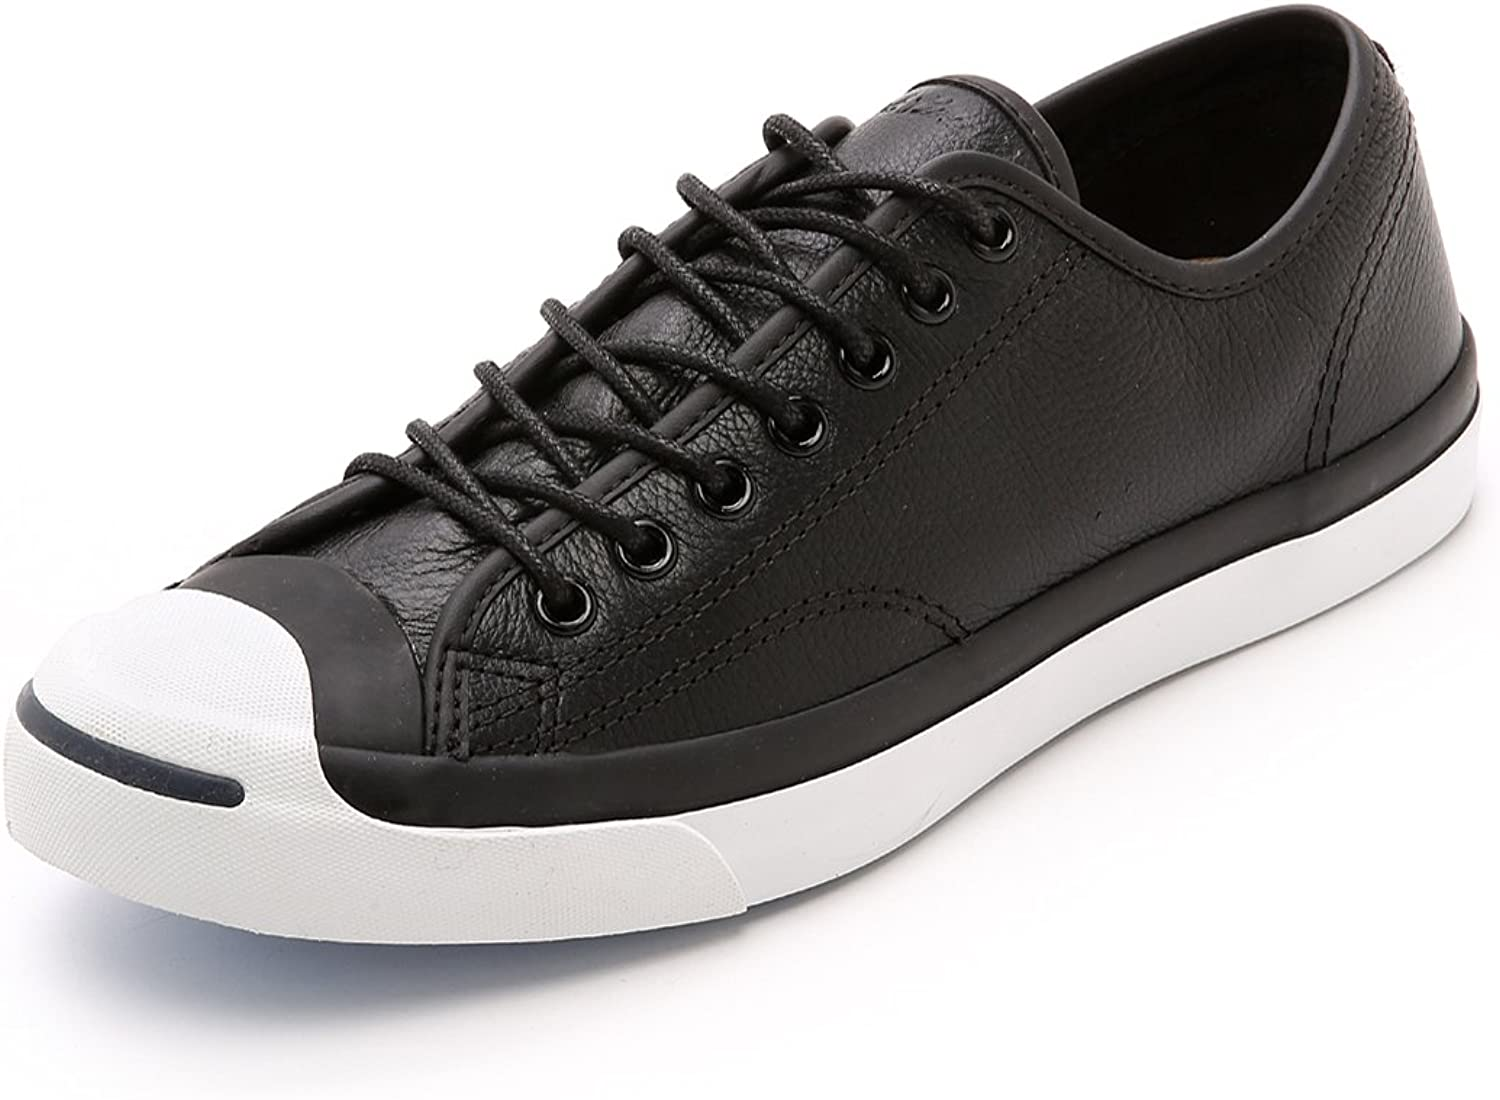 Purcell Jack Ox, Black: Converse